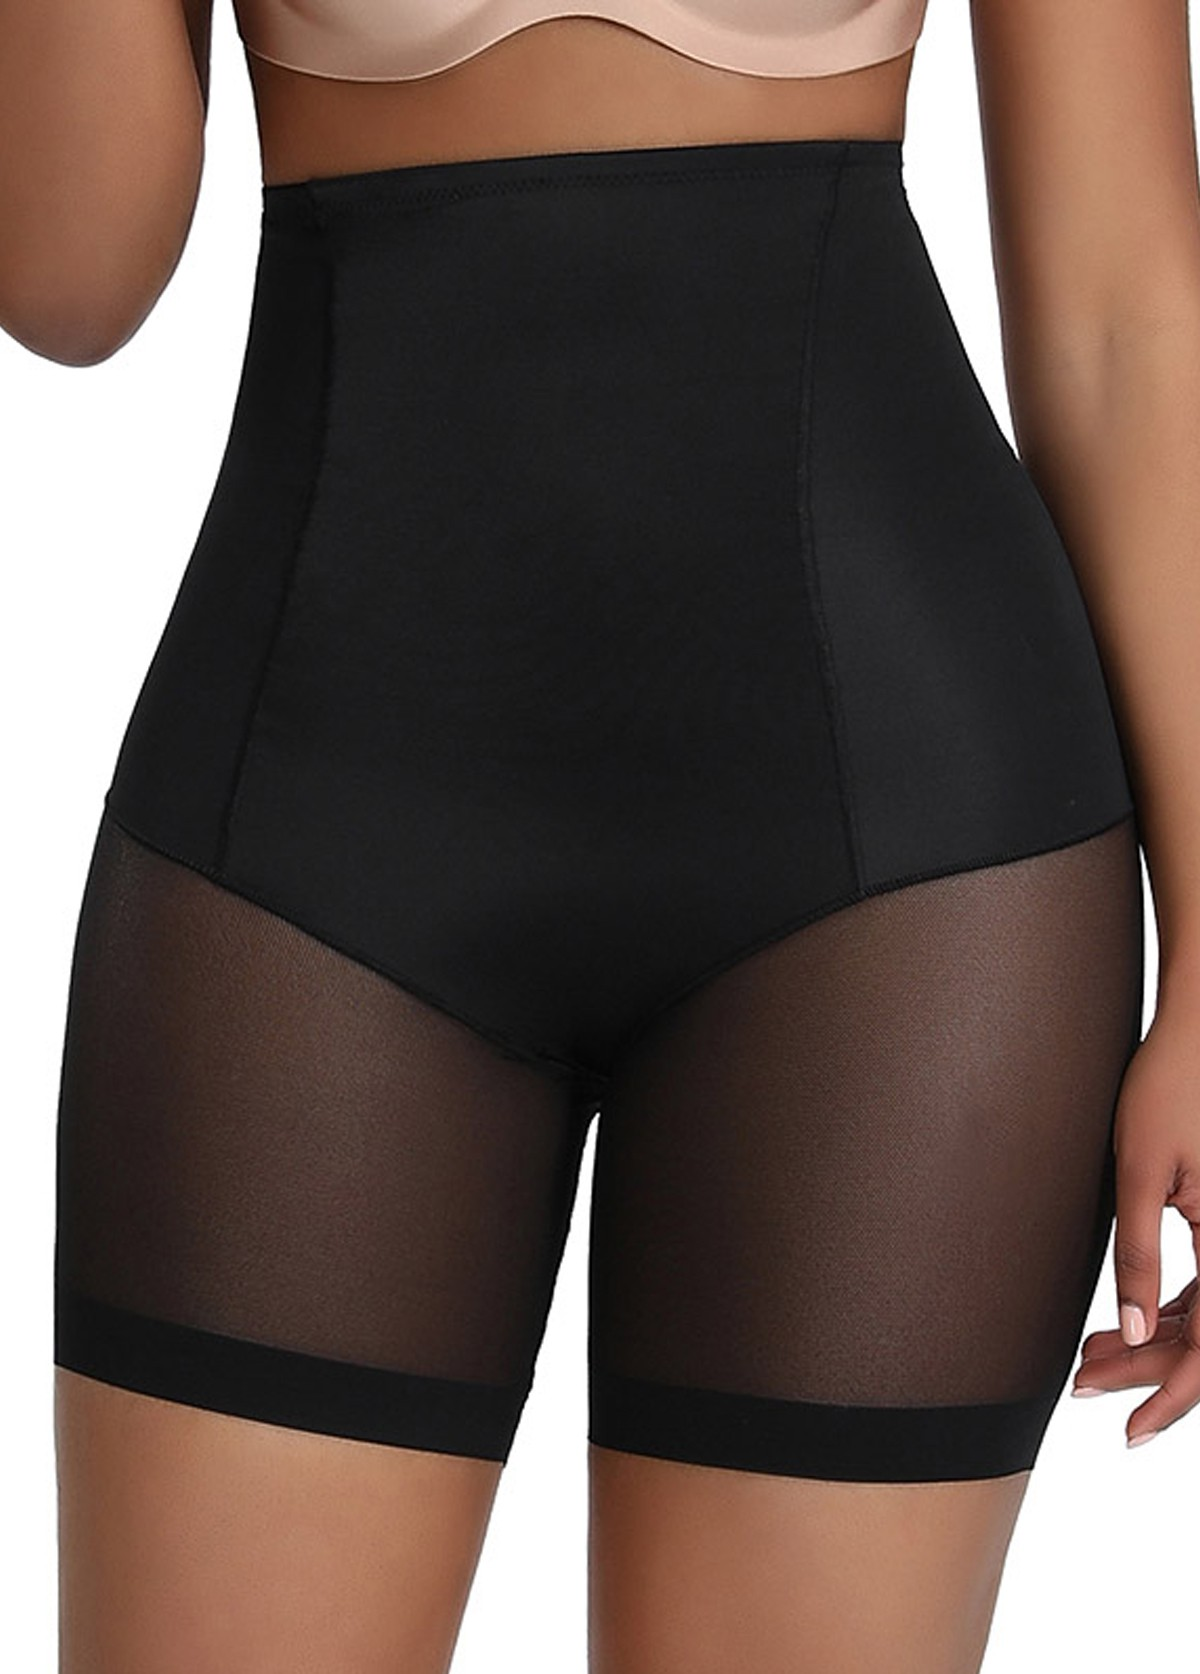 Black Solid High Waisted Panties